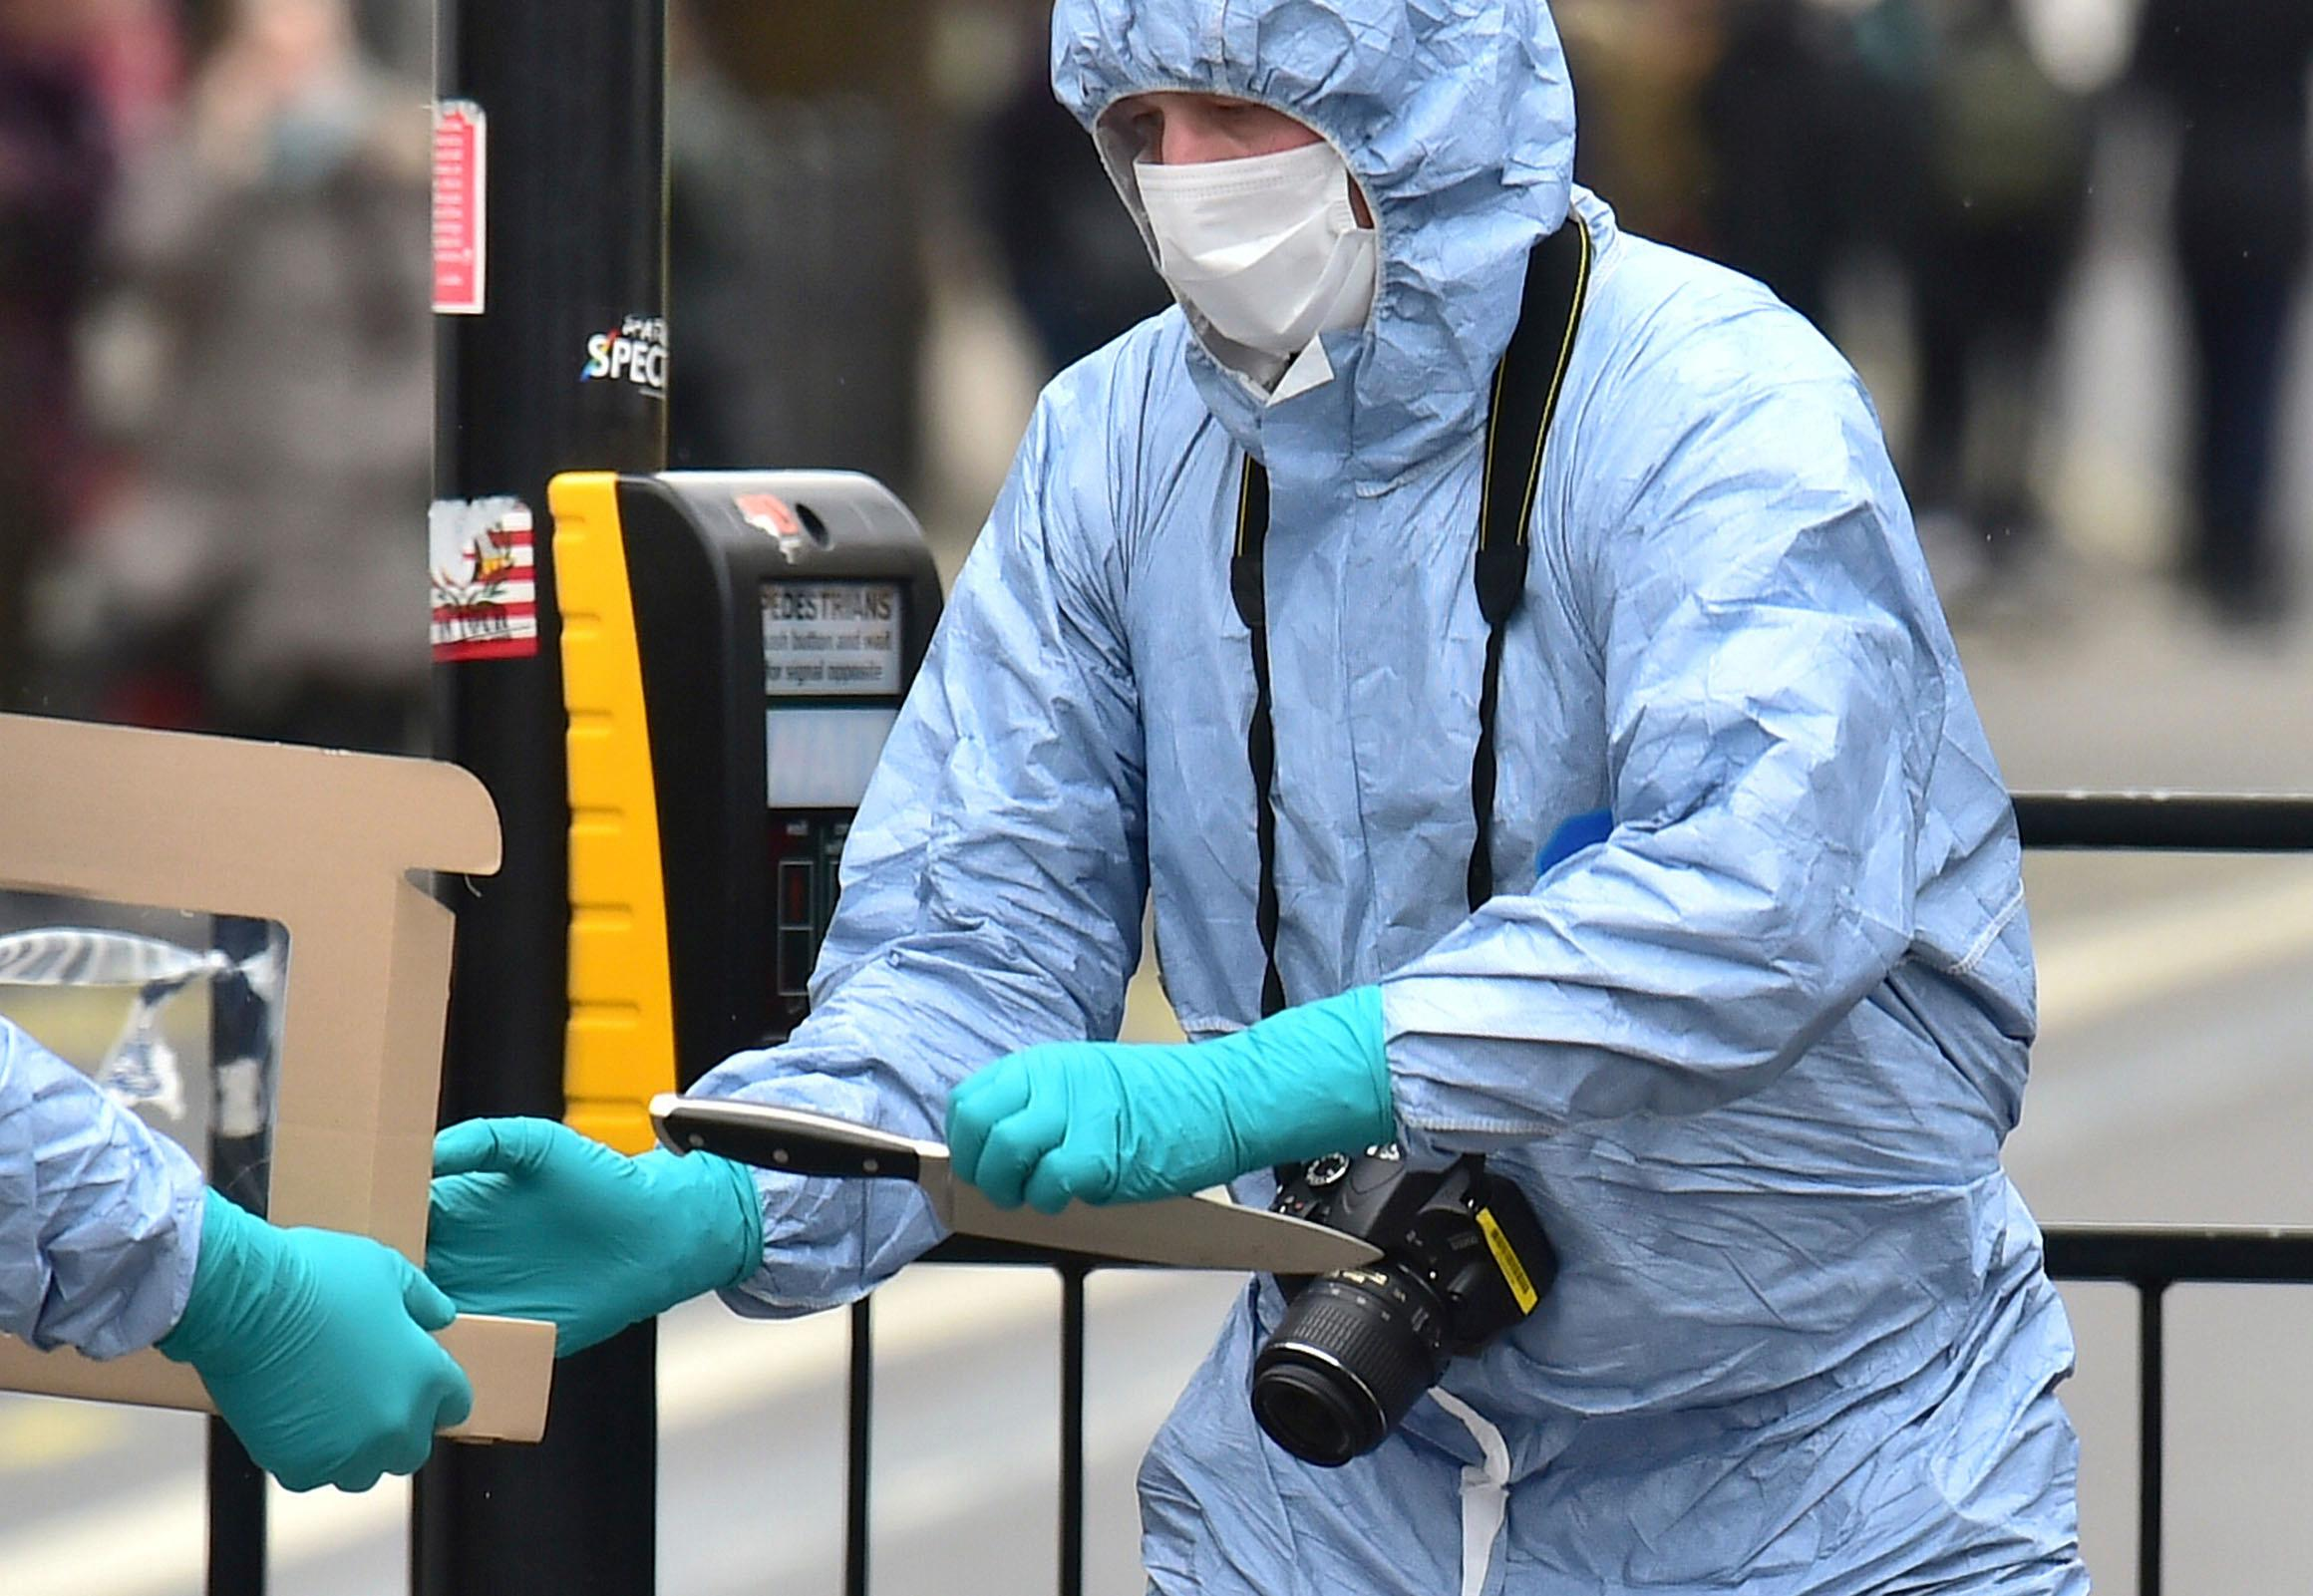 A police forensic officer holds a knife at the scene after a man was arrested following an incident at Whitehall in London, Thursday April 27, 2017.  London police arrested a man for possession of weapons Thursday near Britain's Houses of Parliament. (Dominic Lipinski/PA via AP)